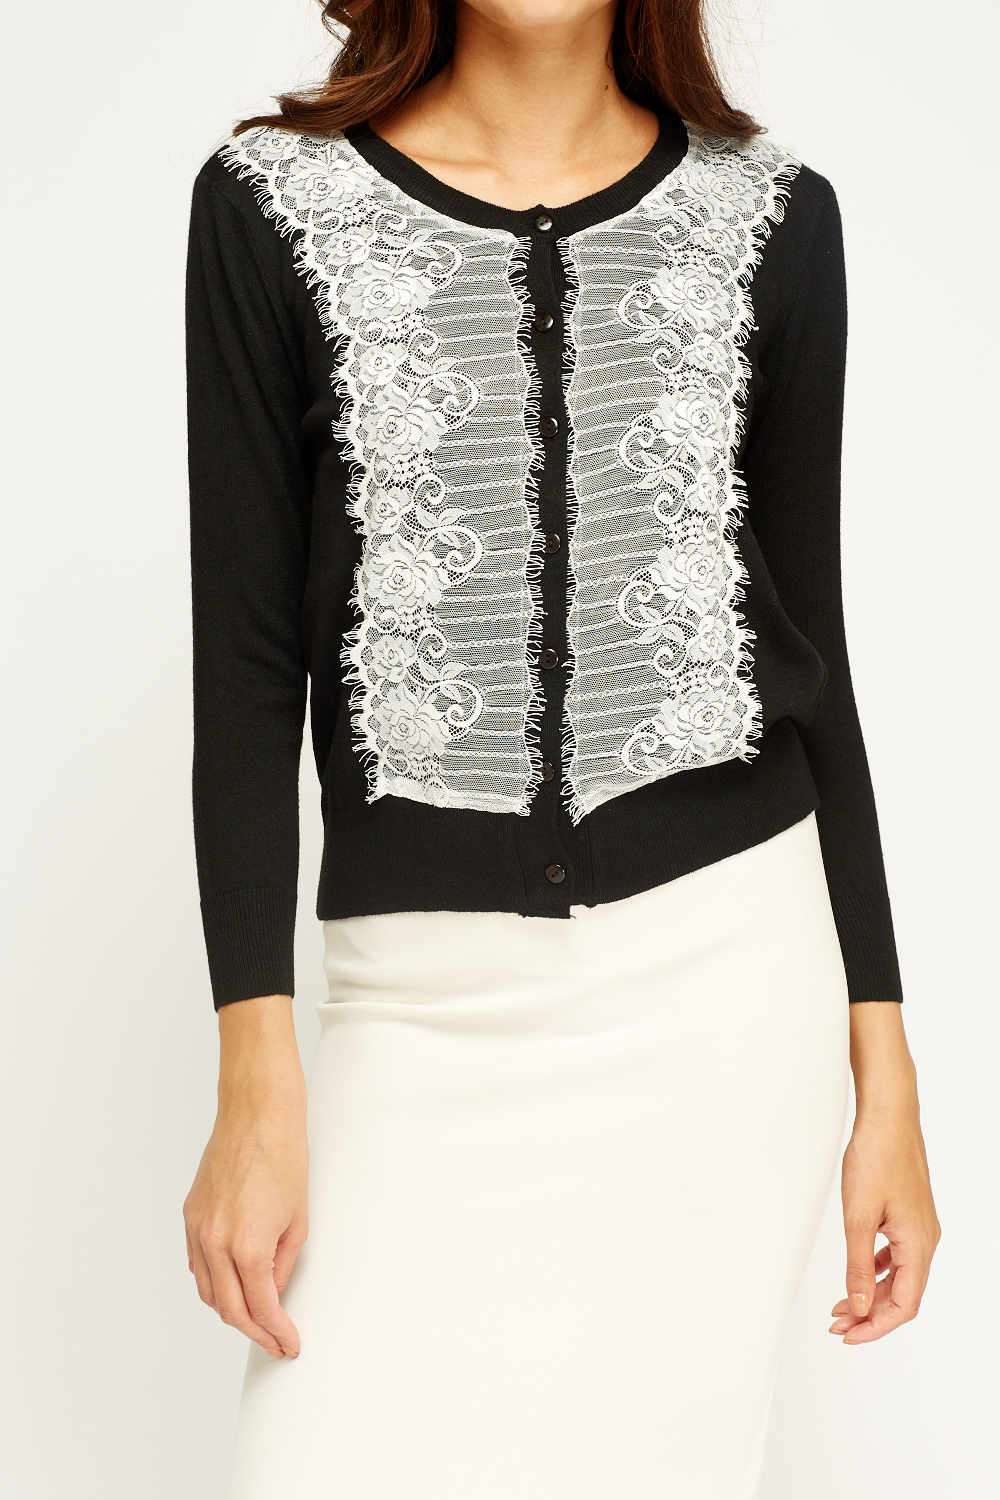 Lace Overlay Knitted Cardigan - 3 Colours - Just £5